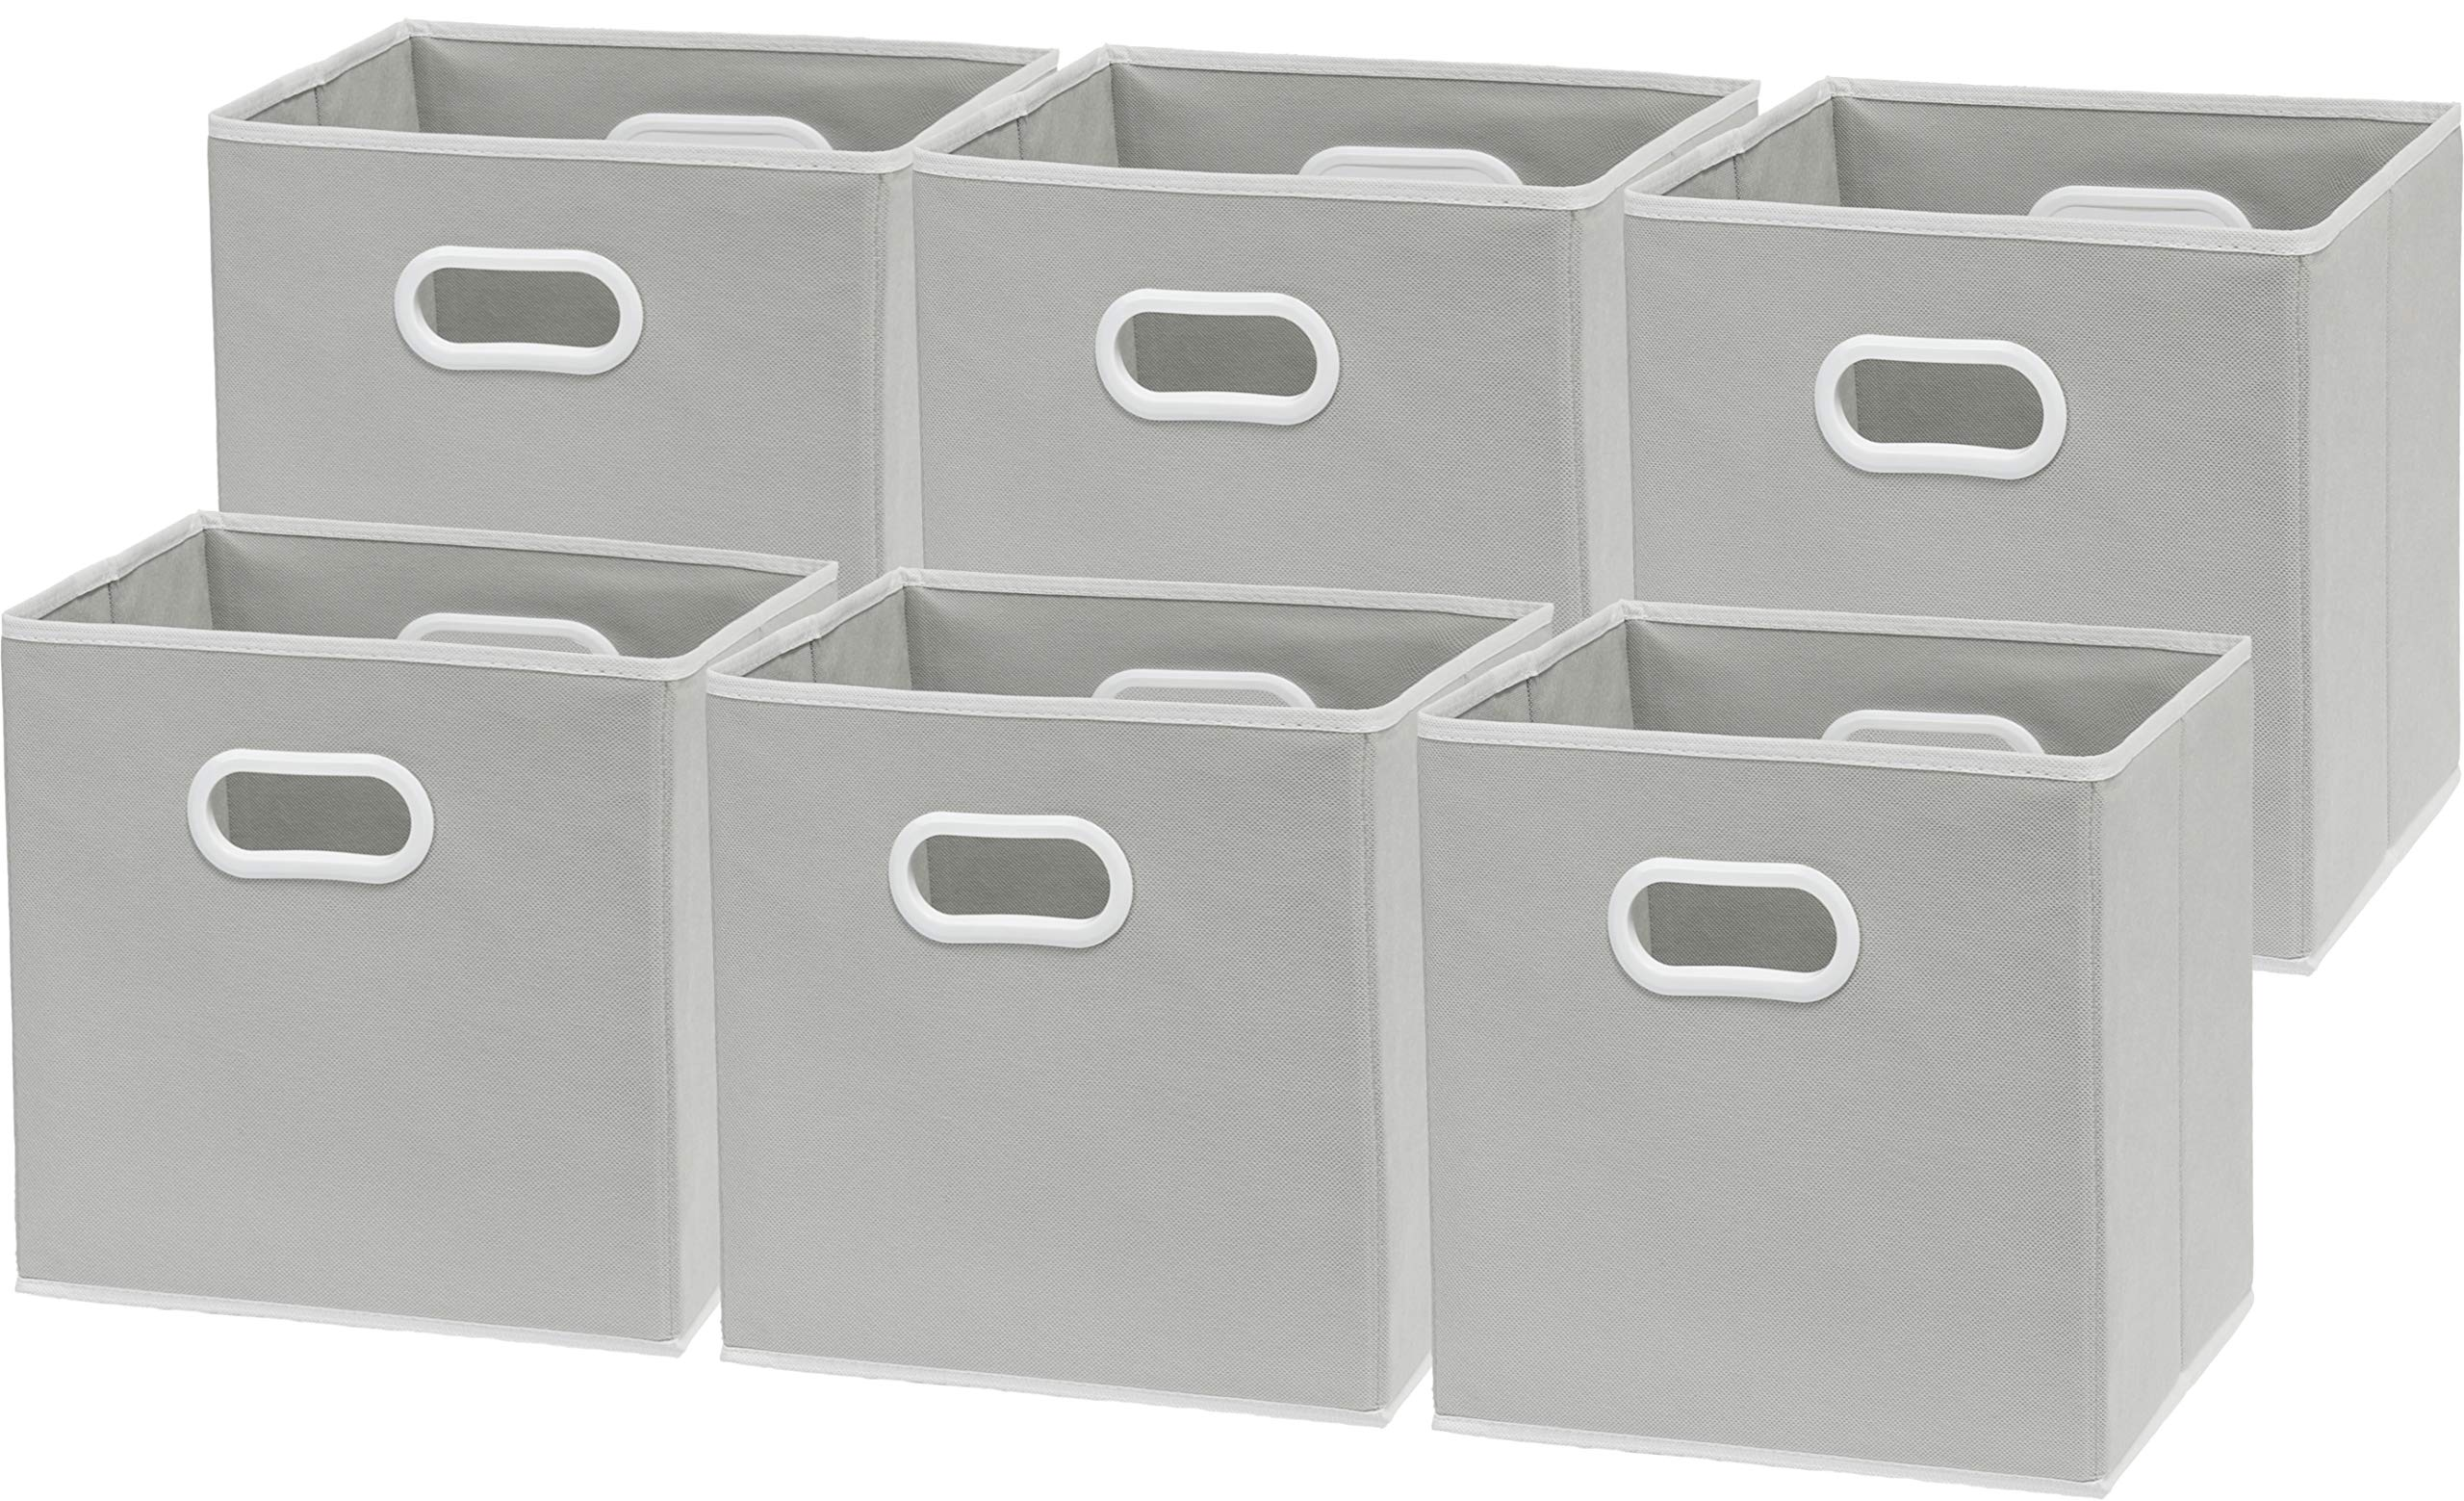 6 Pack - SimpleHouseware Foldable Cube Storage Bin with Handle, Grey (12-Inch Cube) by Simple Houseware